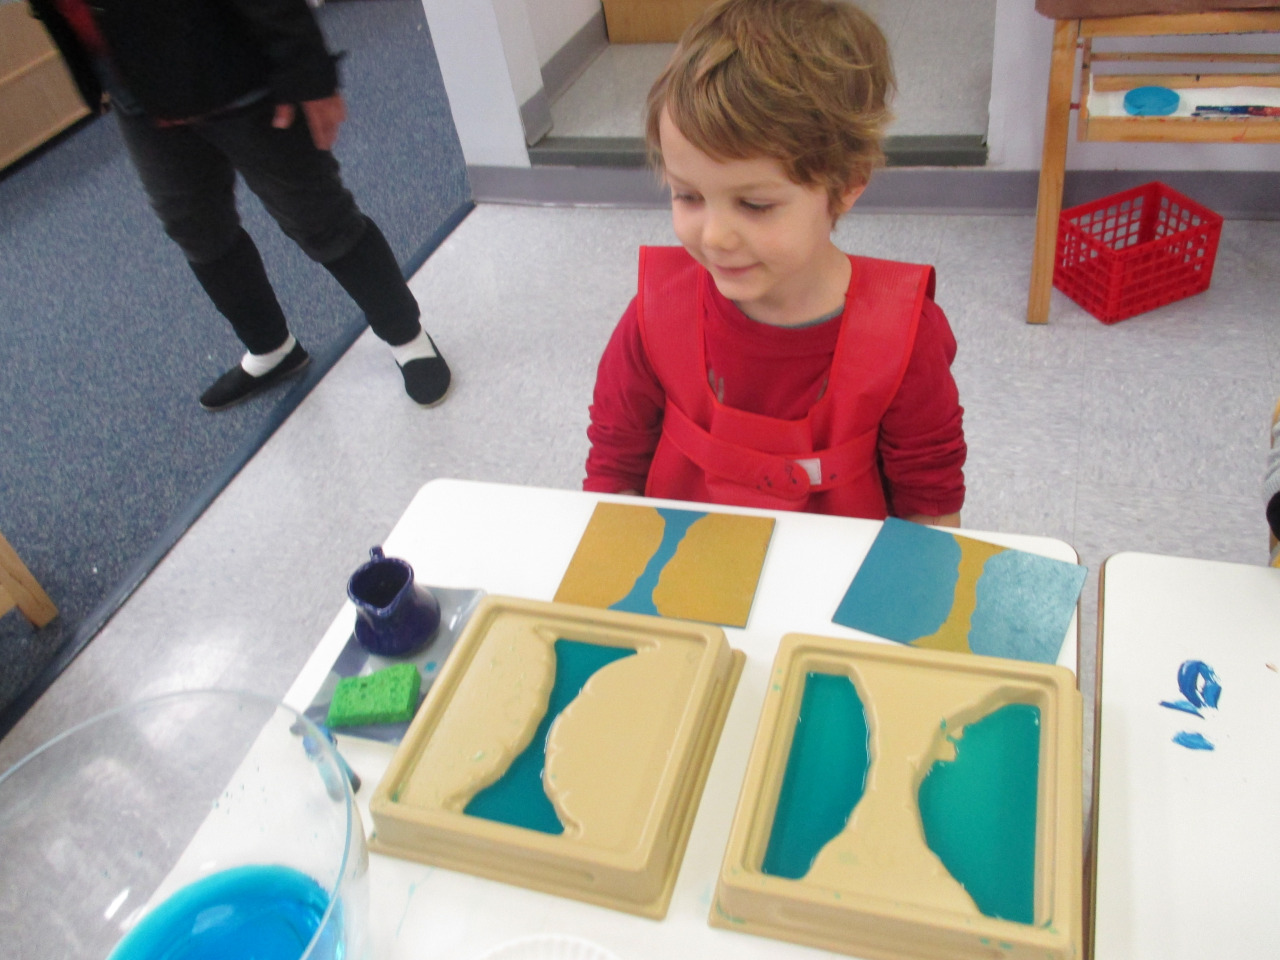 As a part of their study of land and water forms, the Primary 1 Kindergartners took a closer look at 'strait' and 'isthmus'. They poured water into the strait and isthmus trays and also used modeling clay on a paper plate to recreate these two land and water forms.